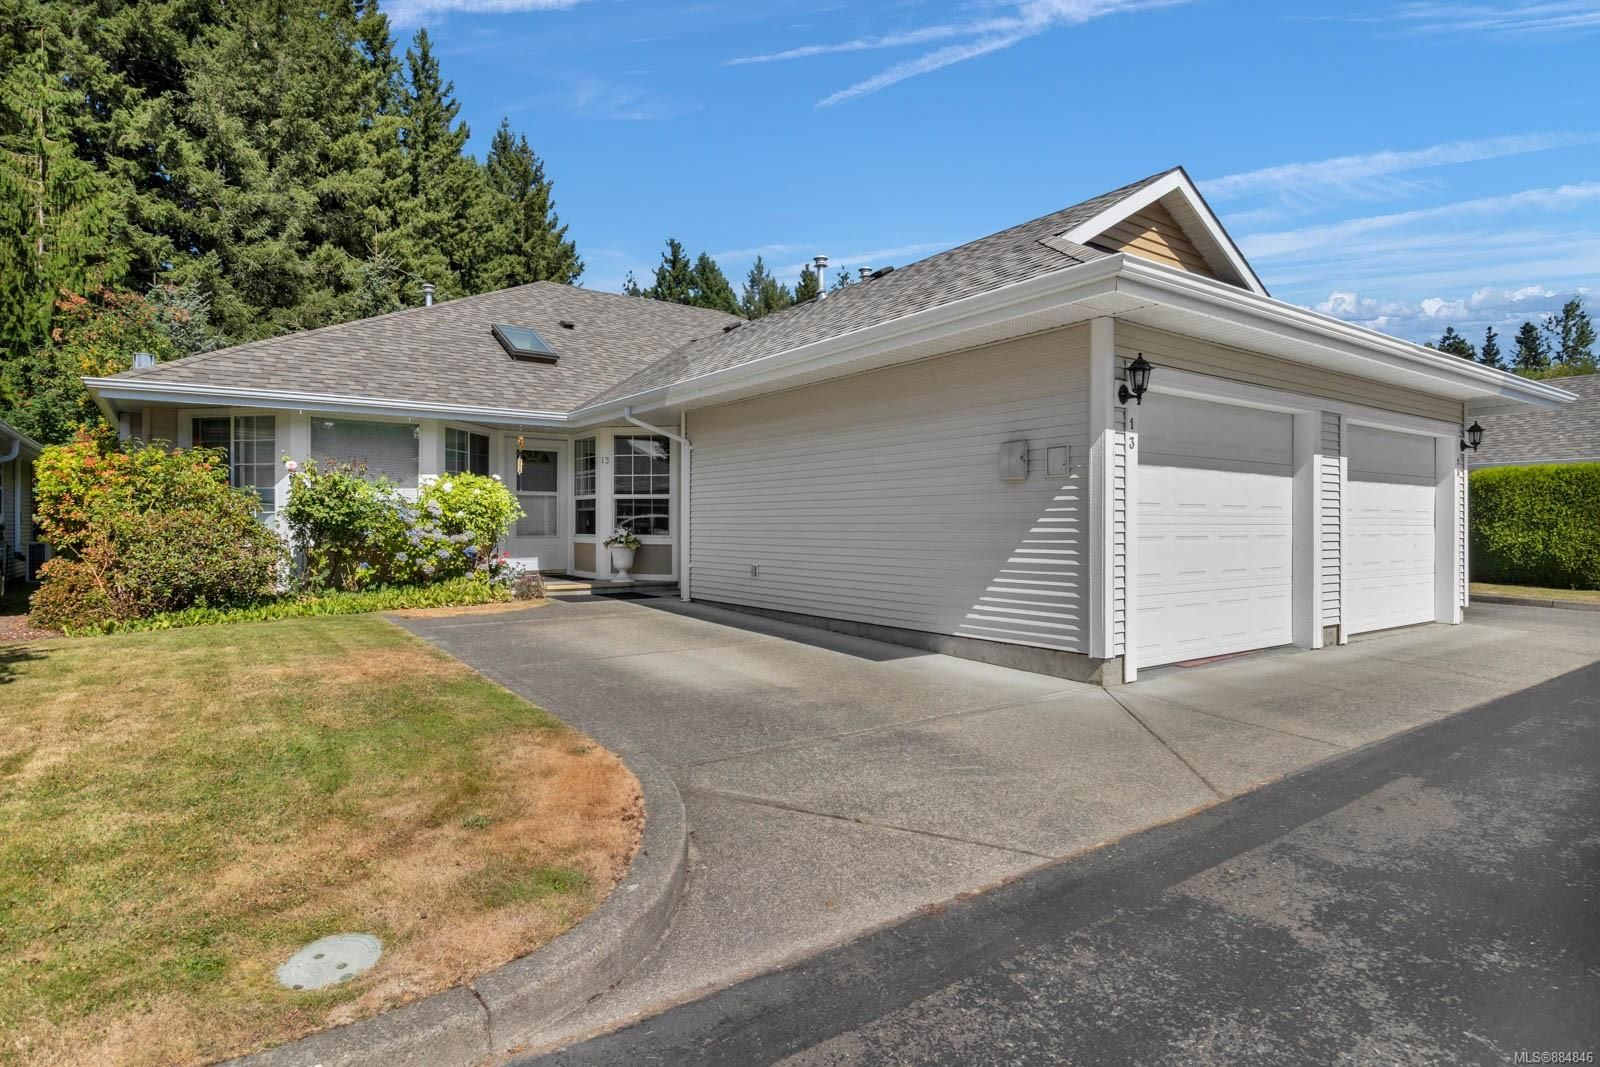 Main Photo: 13 2010 20th St in Courtenay: CV Courtenay City Row/Townhouse for sale (Comox Valley)  : MLS®# 884846